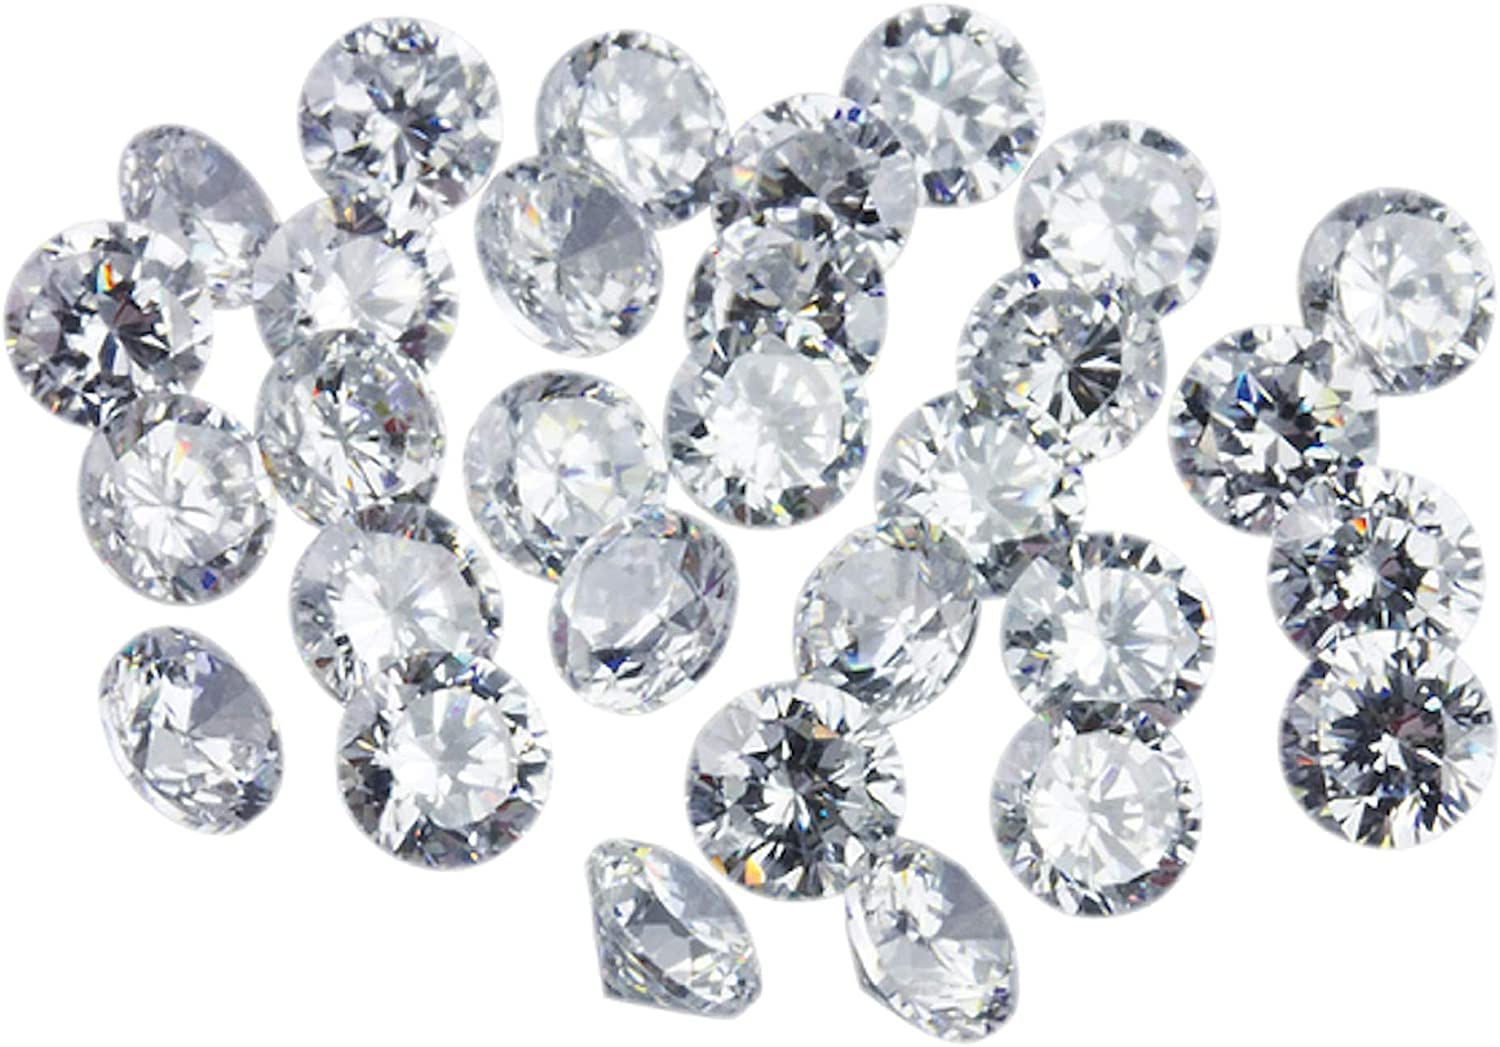 Jaz77 - Round 6 mm White Cubic 10 Quality Lot Lo AA Attention brand pcs Zirconia New Shipping Free